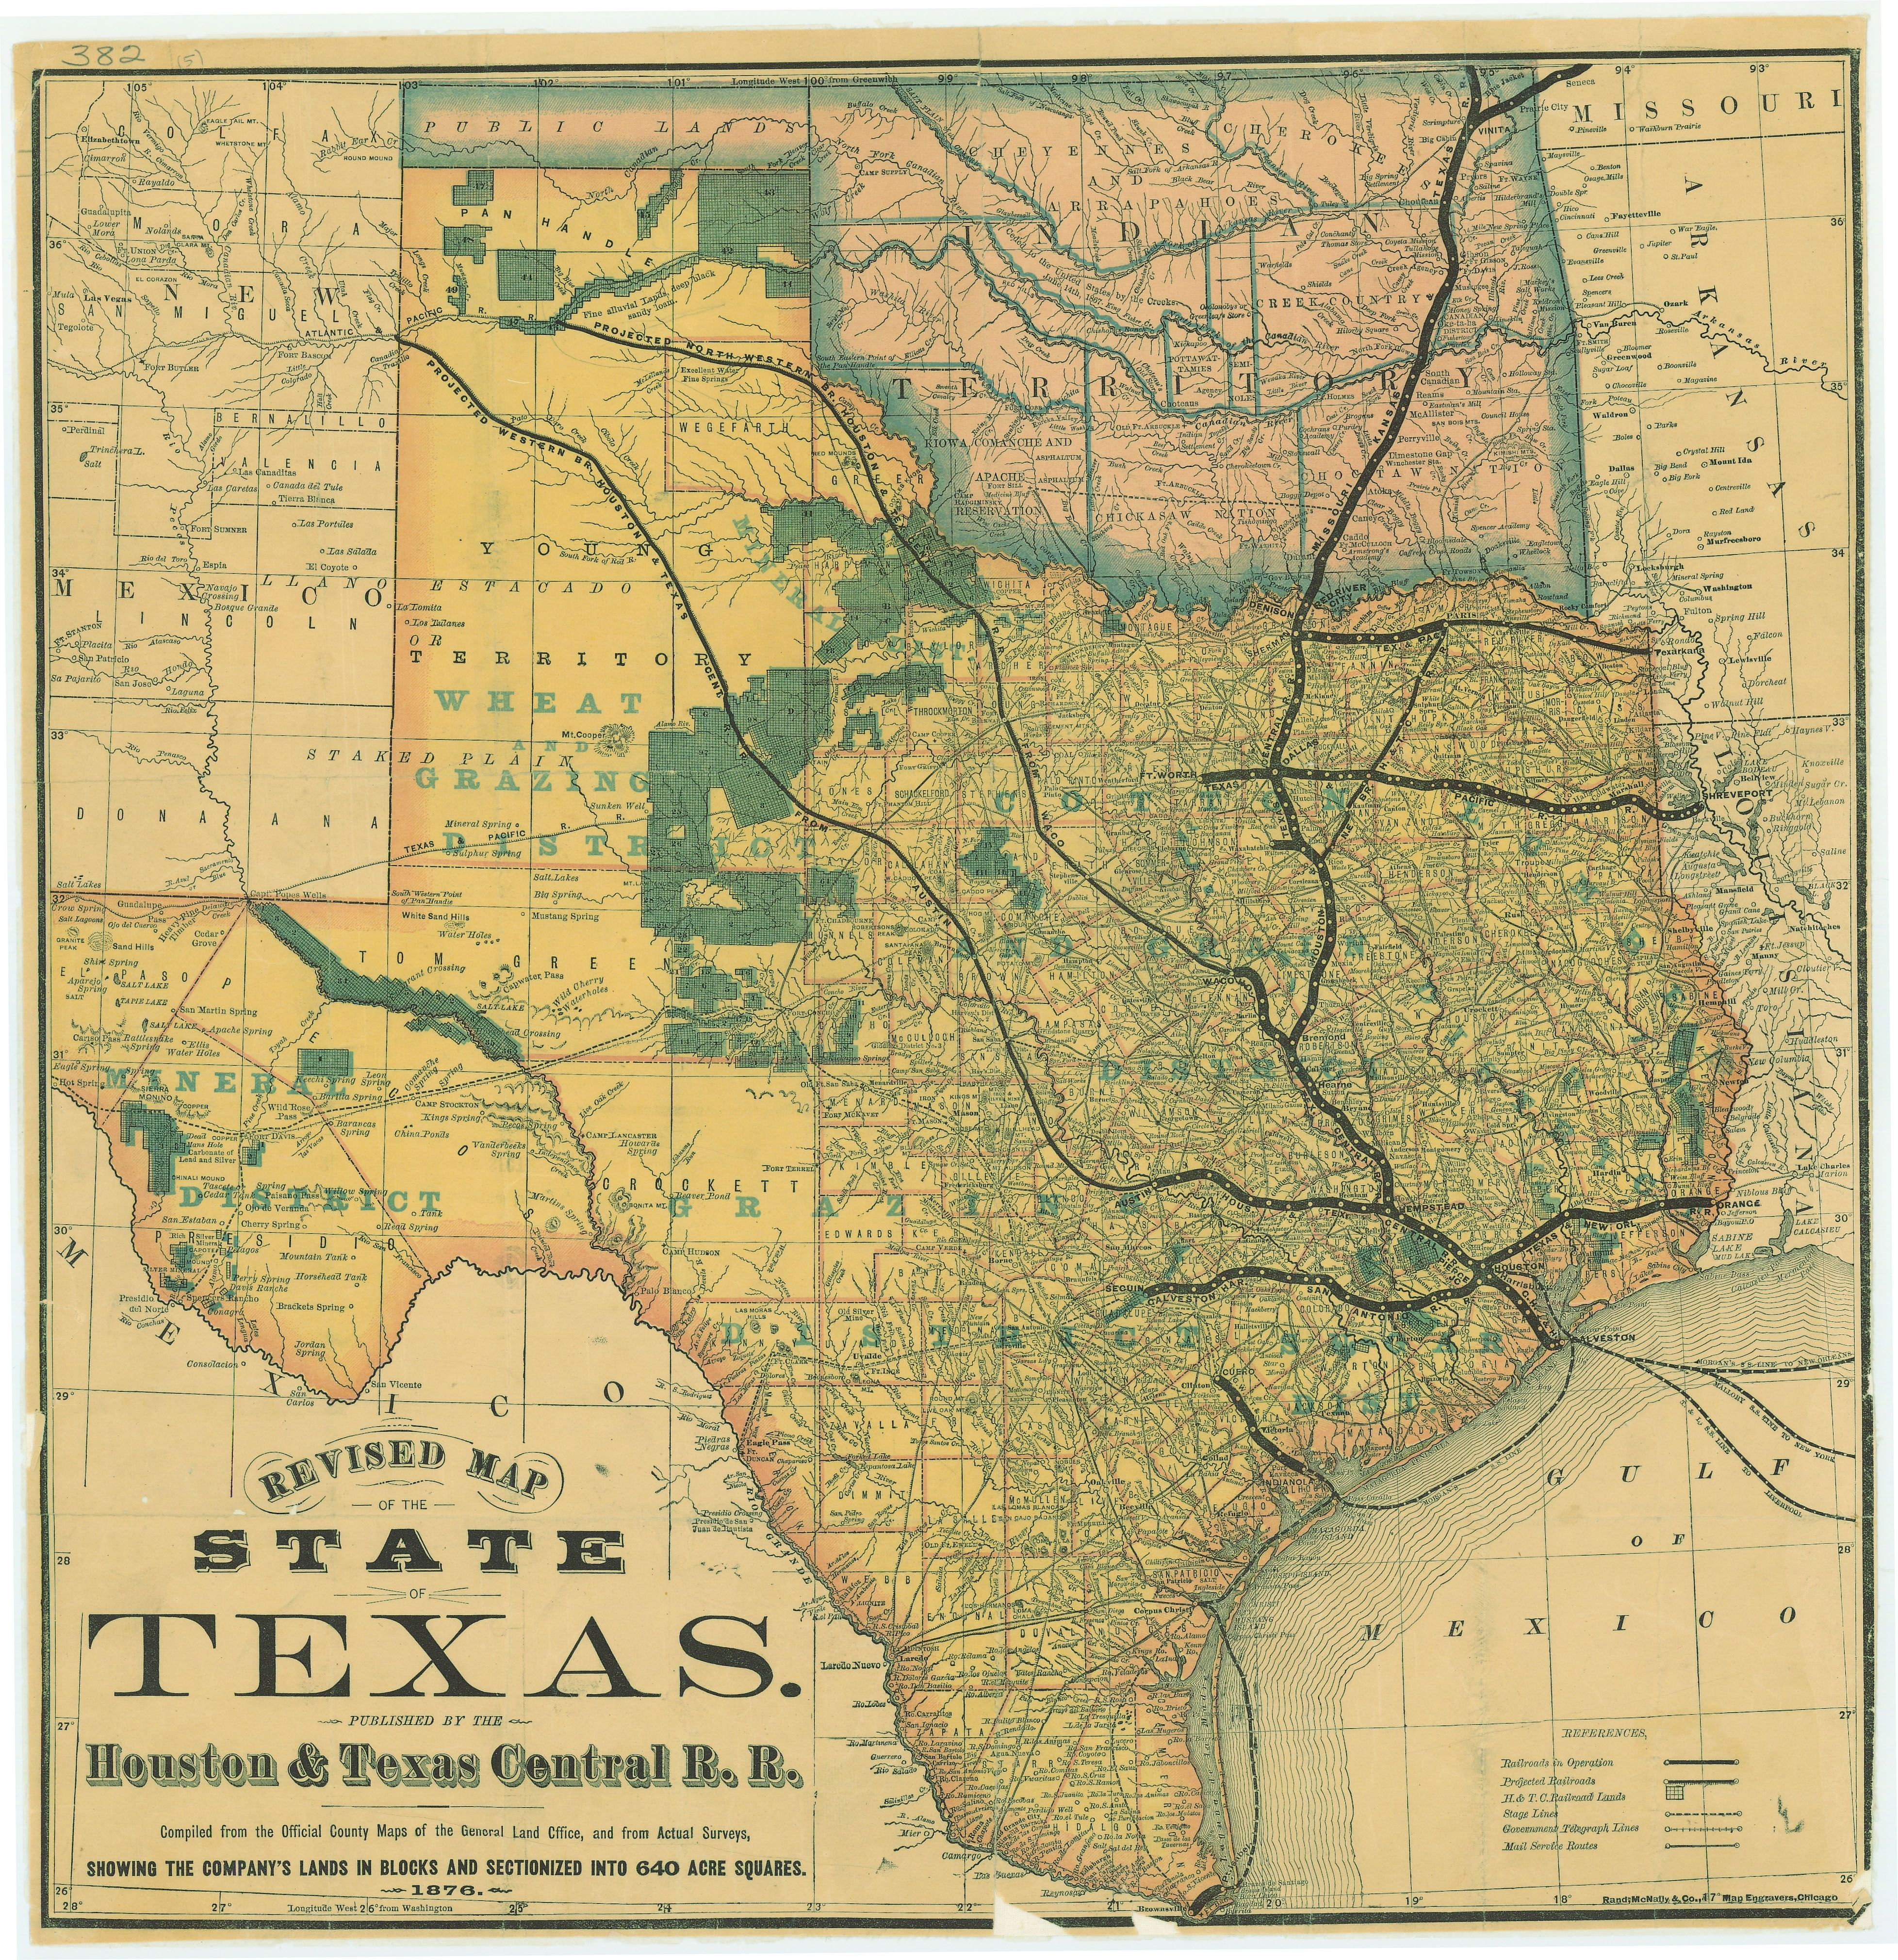 1876 Houston and Central Railway Map of Texas and Indian Territory